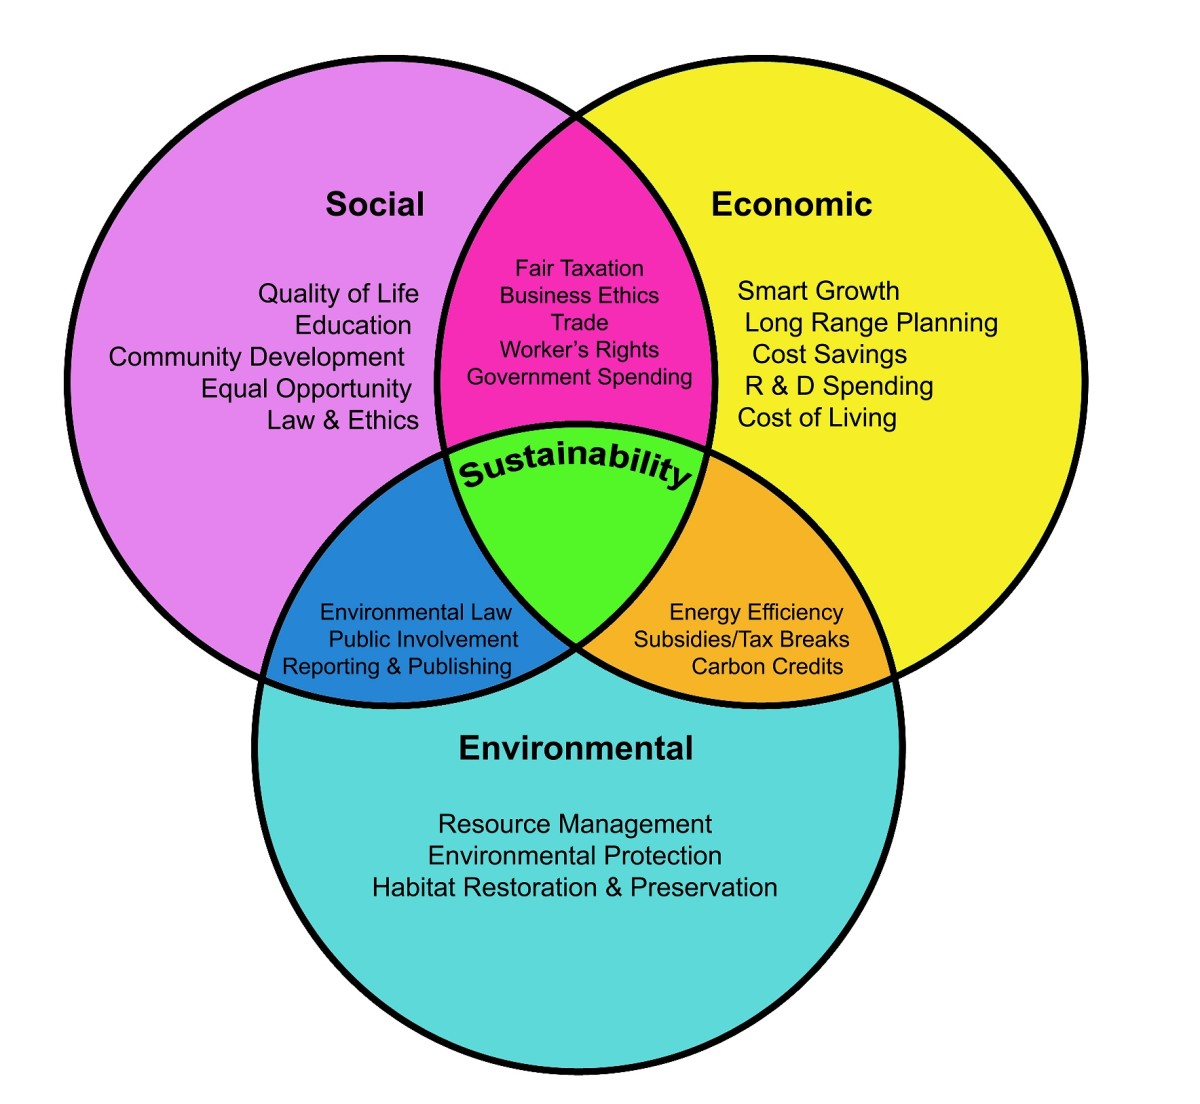 The Environmental Economic And Social Components Of